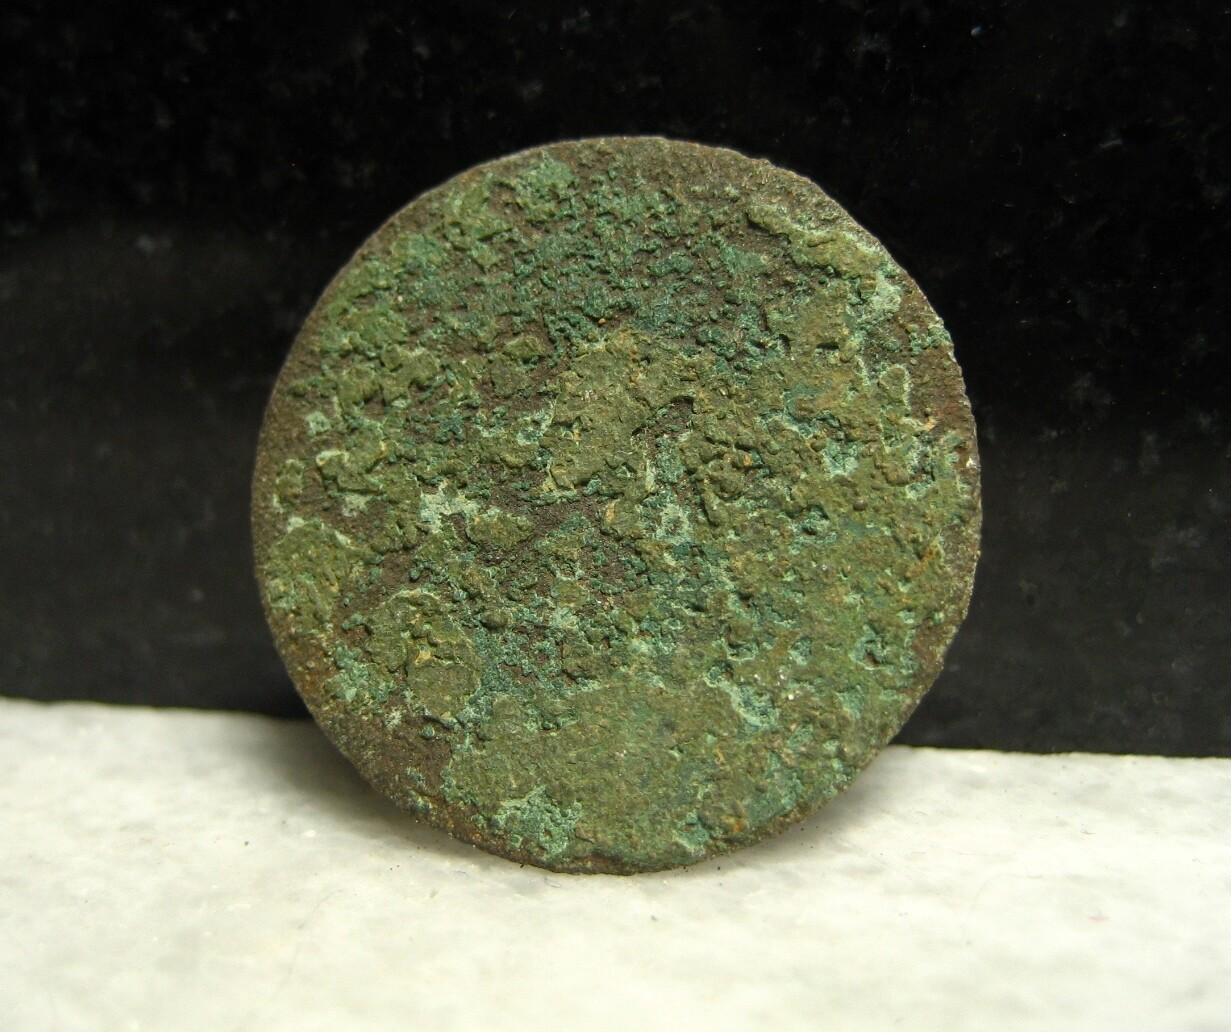 JUST ADDED ON 8/22 - DUNKER CHURCH / THE BATTLE OF ANTIETAM - Flat or Coin Coat Button